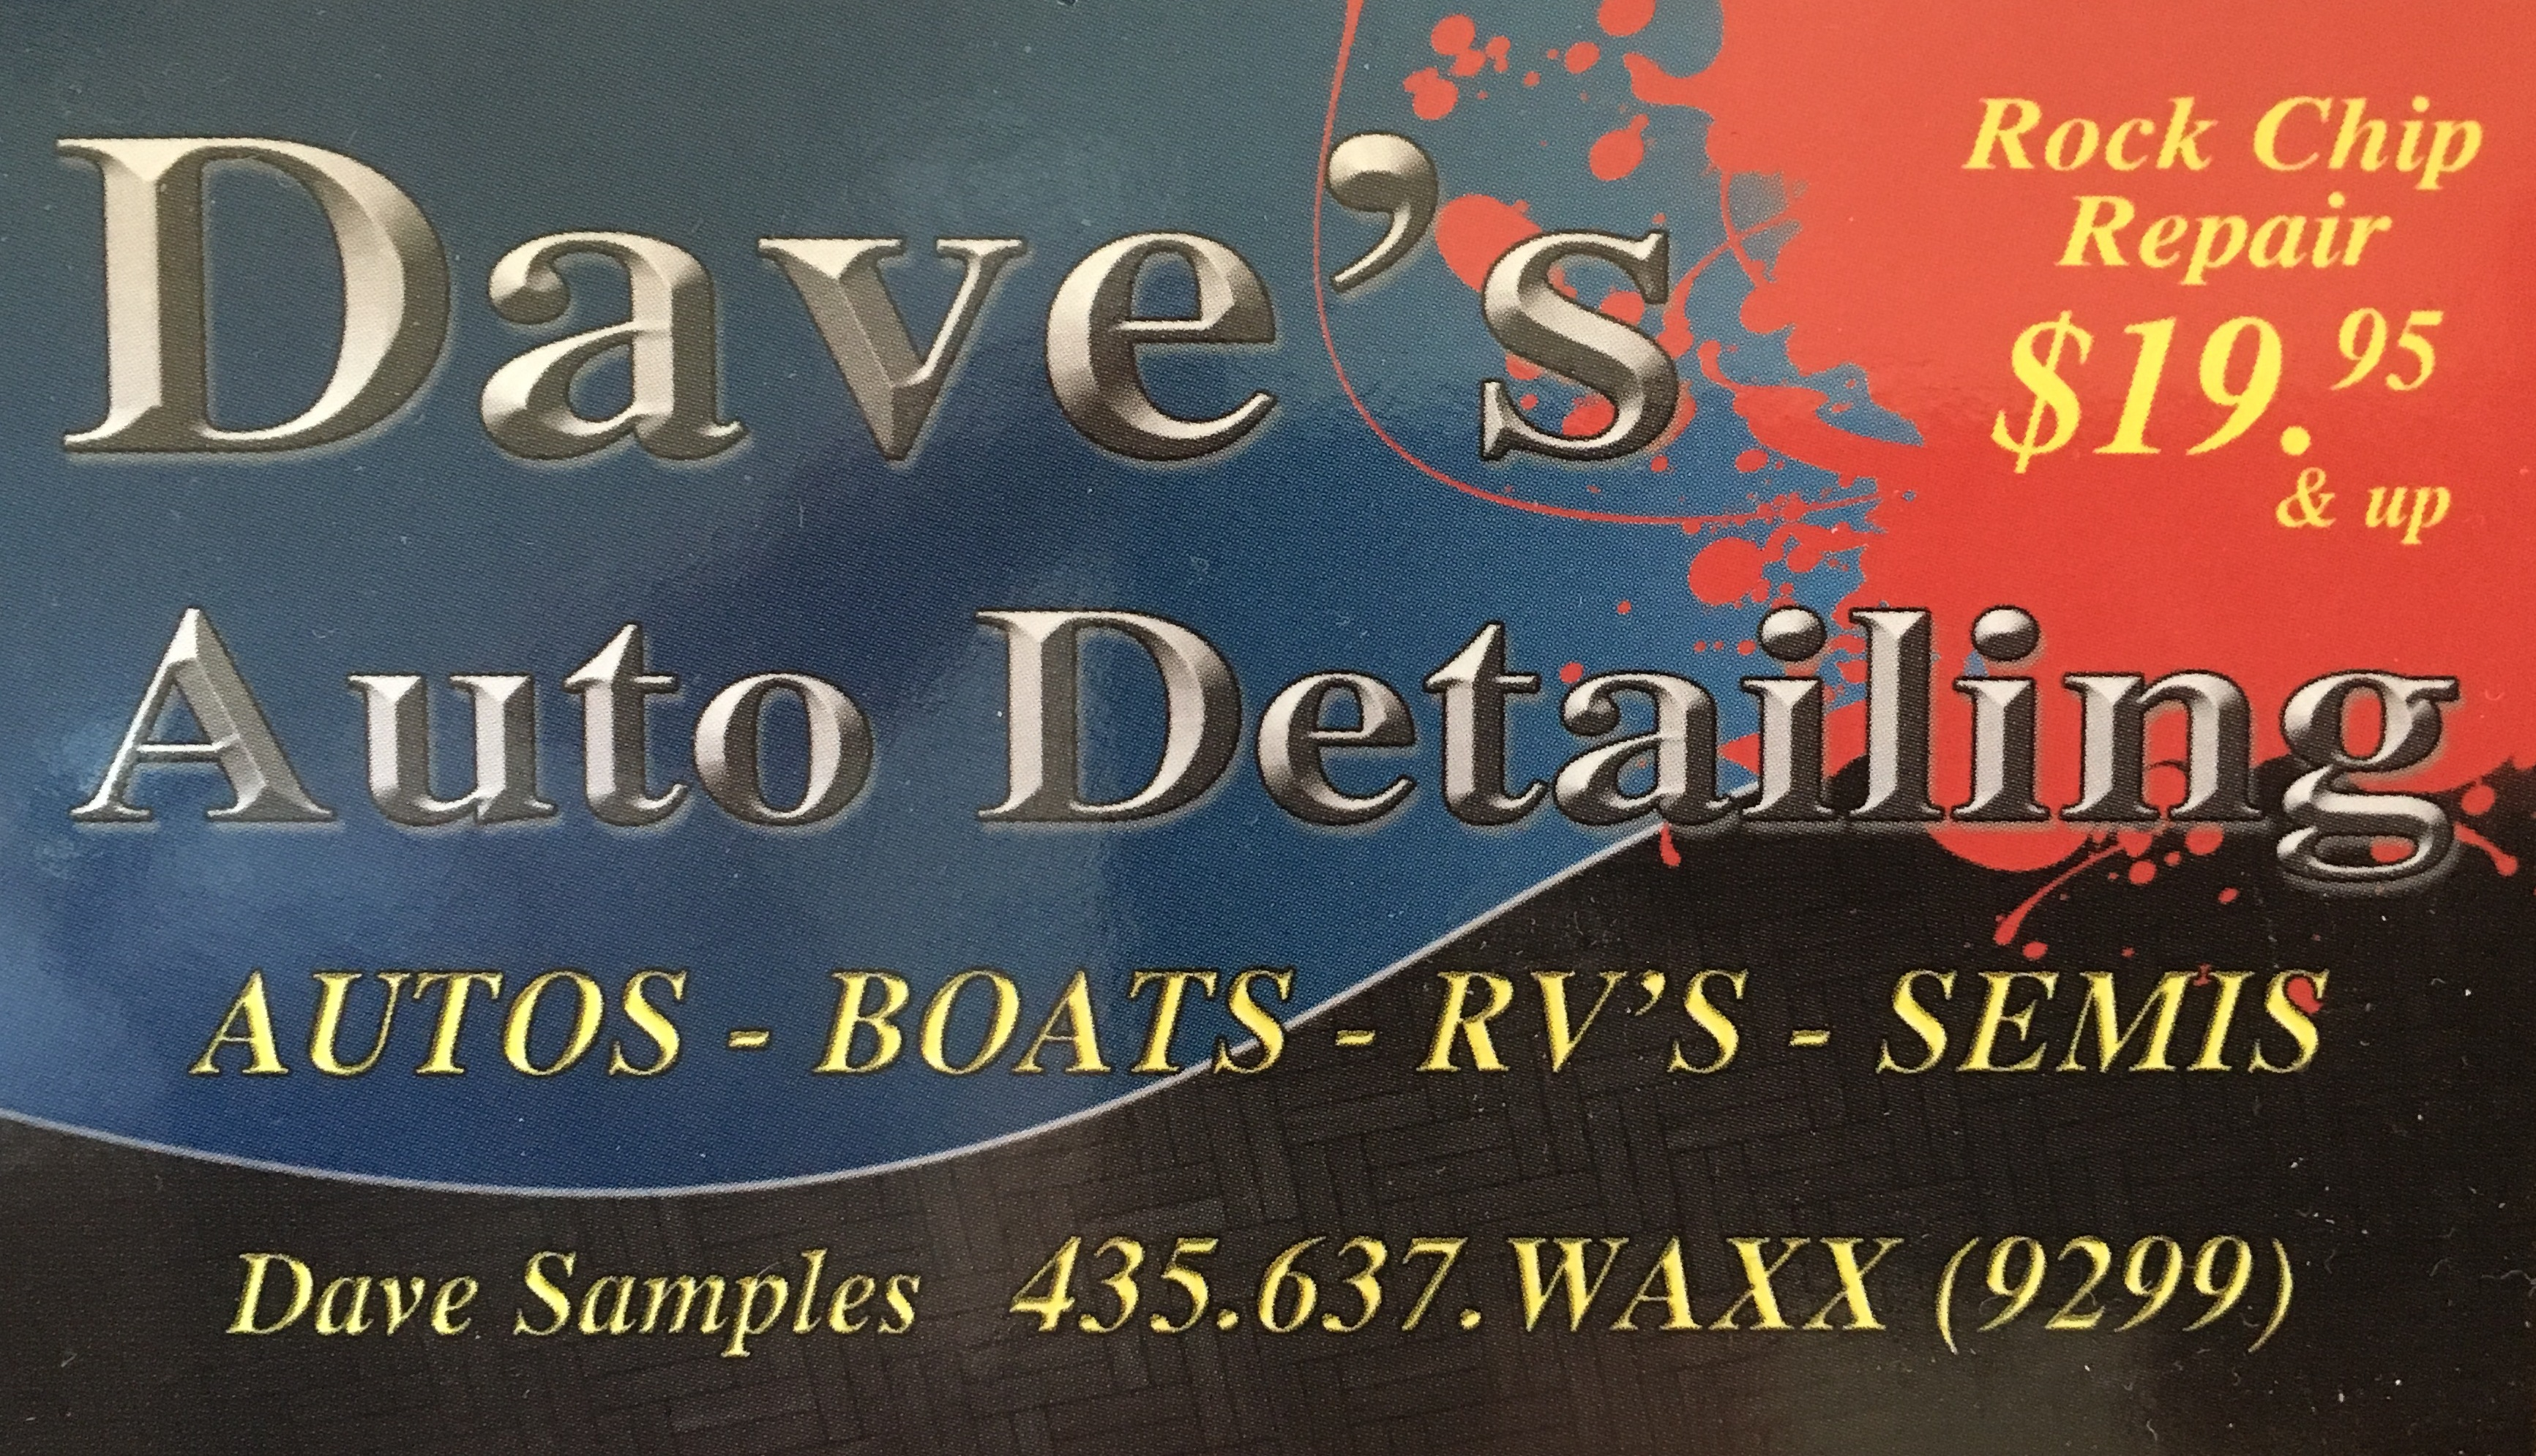 DAVE'S AUTO DETAILING - FULL CAR DETAIL $104.99